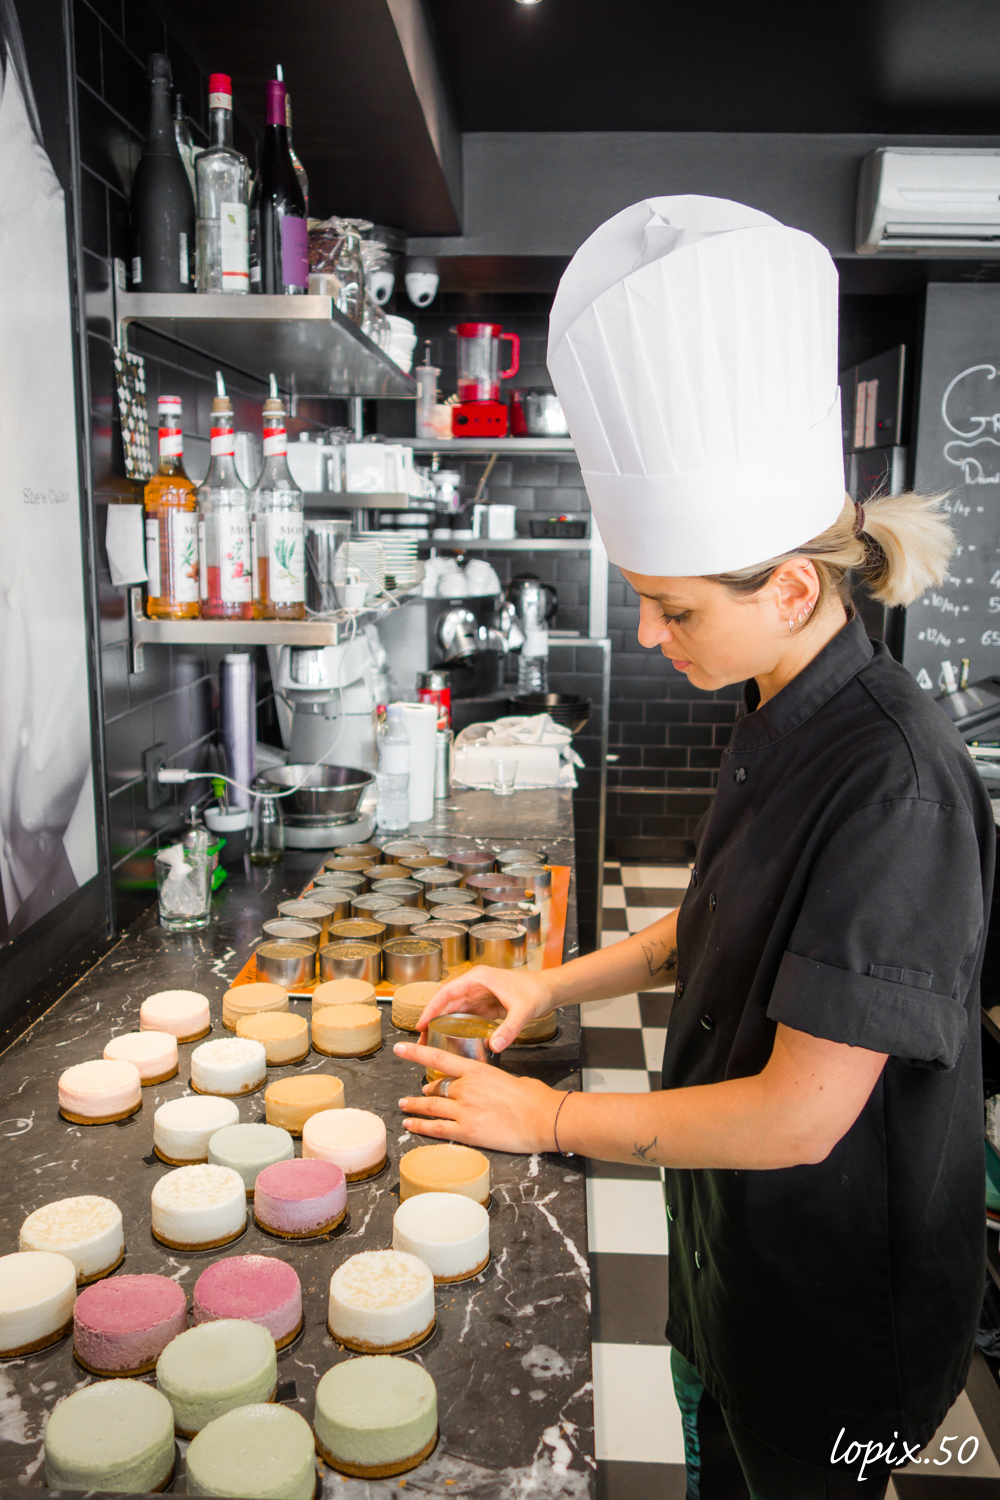 she's-cake-pour-les-amoureux-du-cheesecake-absolutelyfemme.com